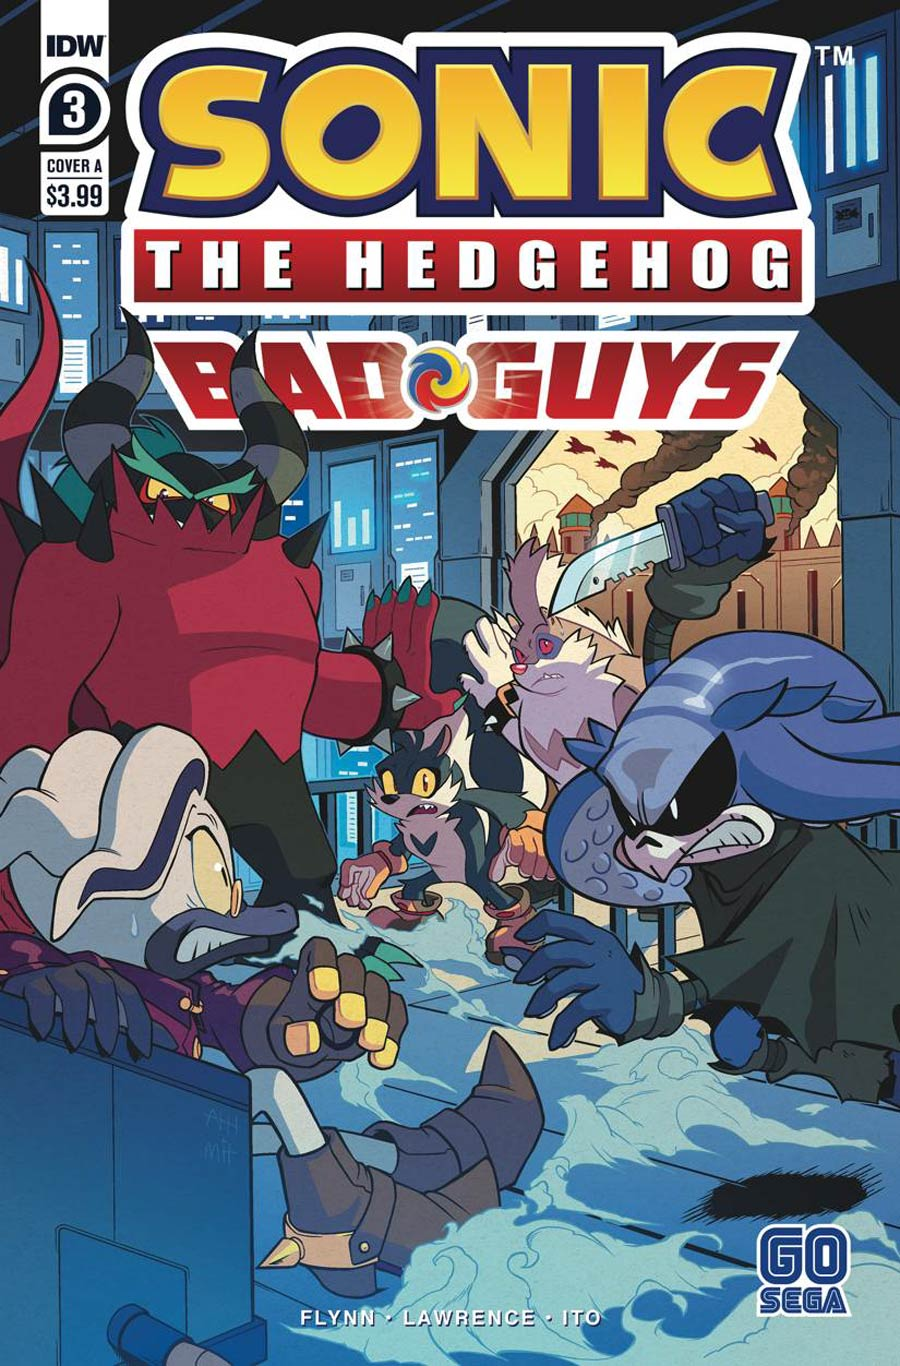 Sonic The Hedgehog Bad Guys #3 Cover A Regular Aaron Hammerstrom Cover